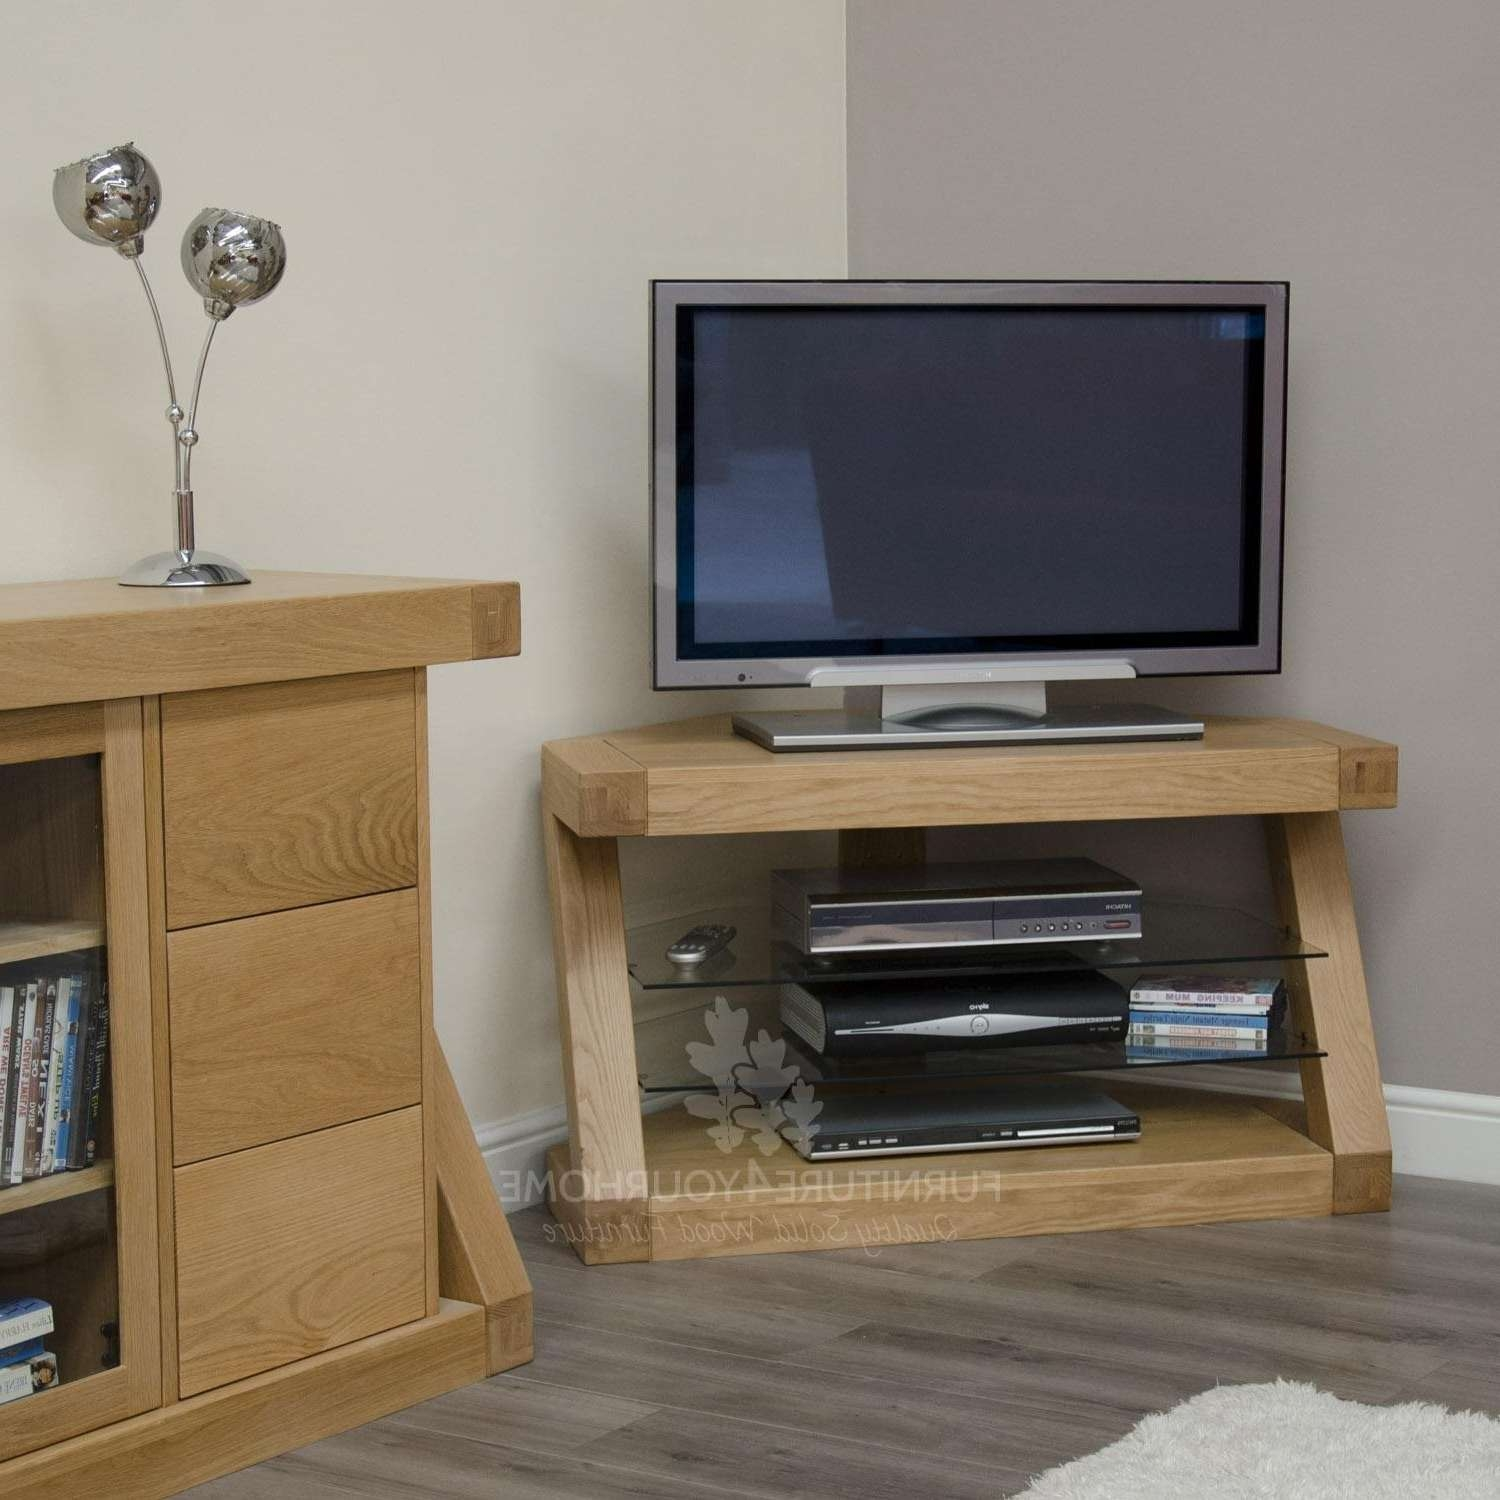 Picturesque Design Small Corner Tv Cabinet Beautiful Ideas Z Solid Throughout Dark Wood Corner Tv Stands (View 10 of 15)